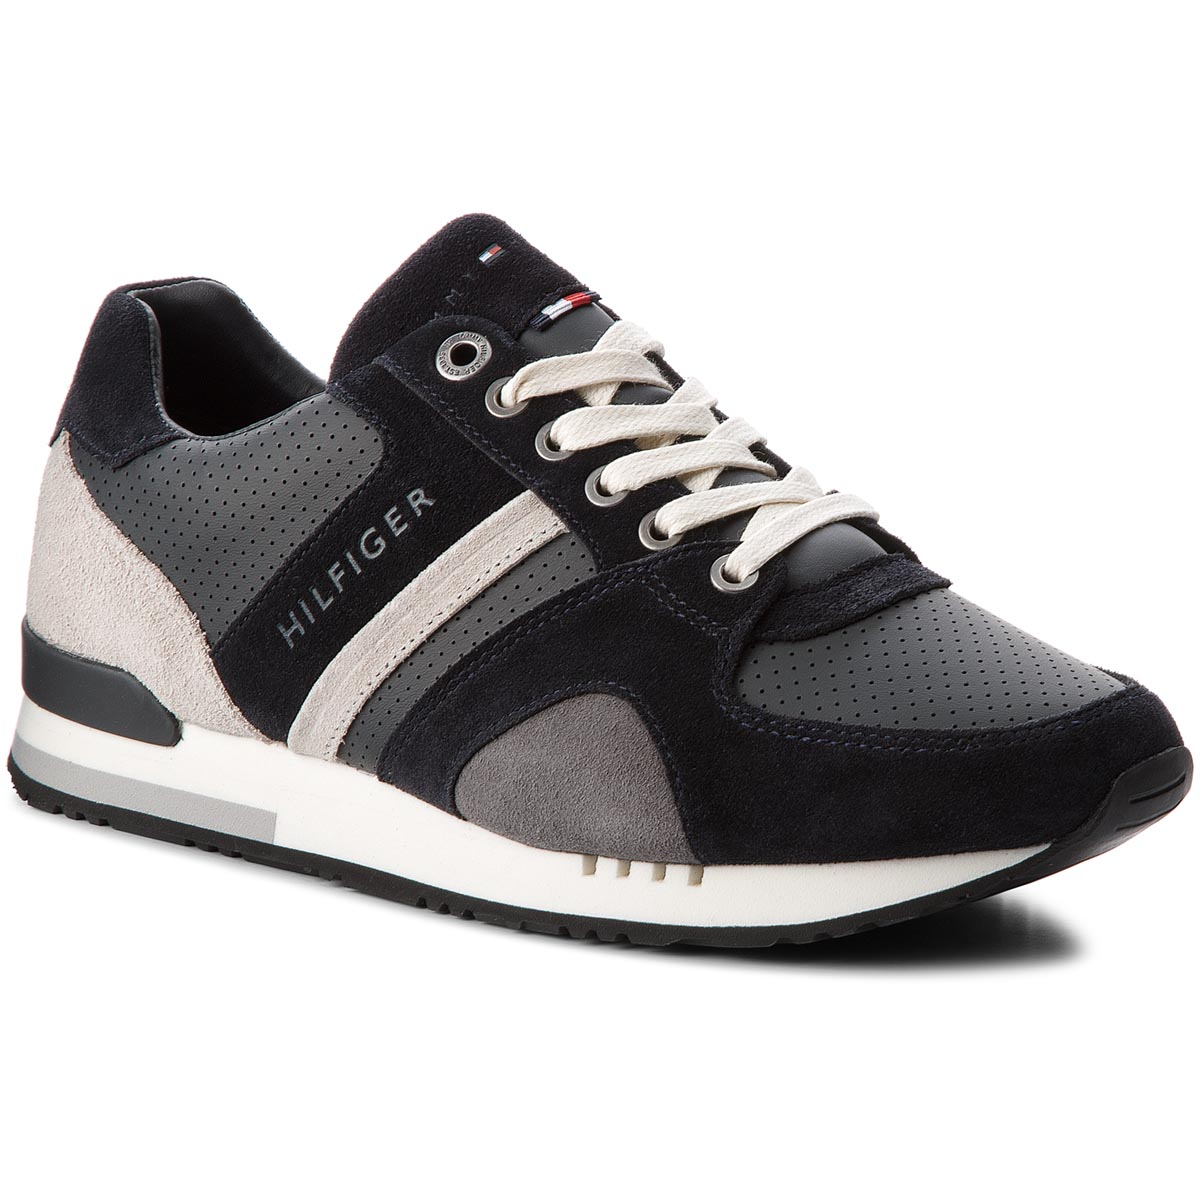 728e9af59c140 Sneakers TOMMY HILFIGER New Iconic Casual Runner FM0FM01640 Midnight 403